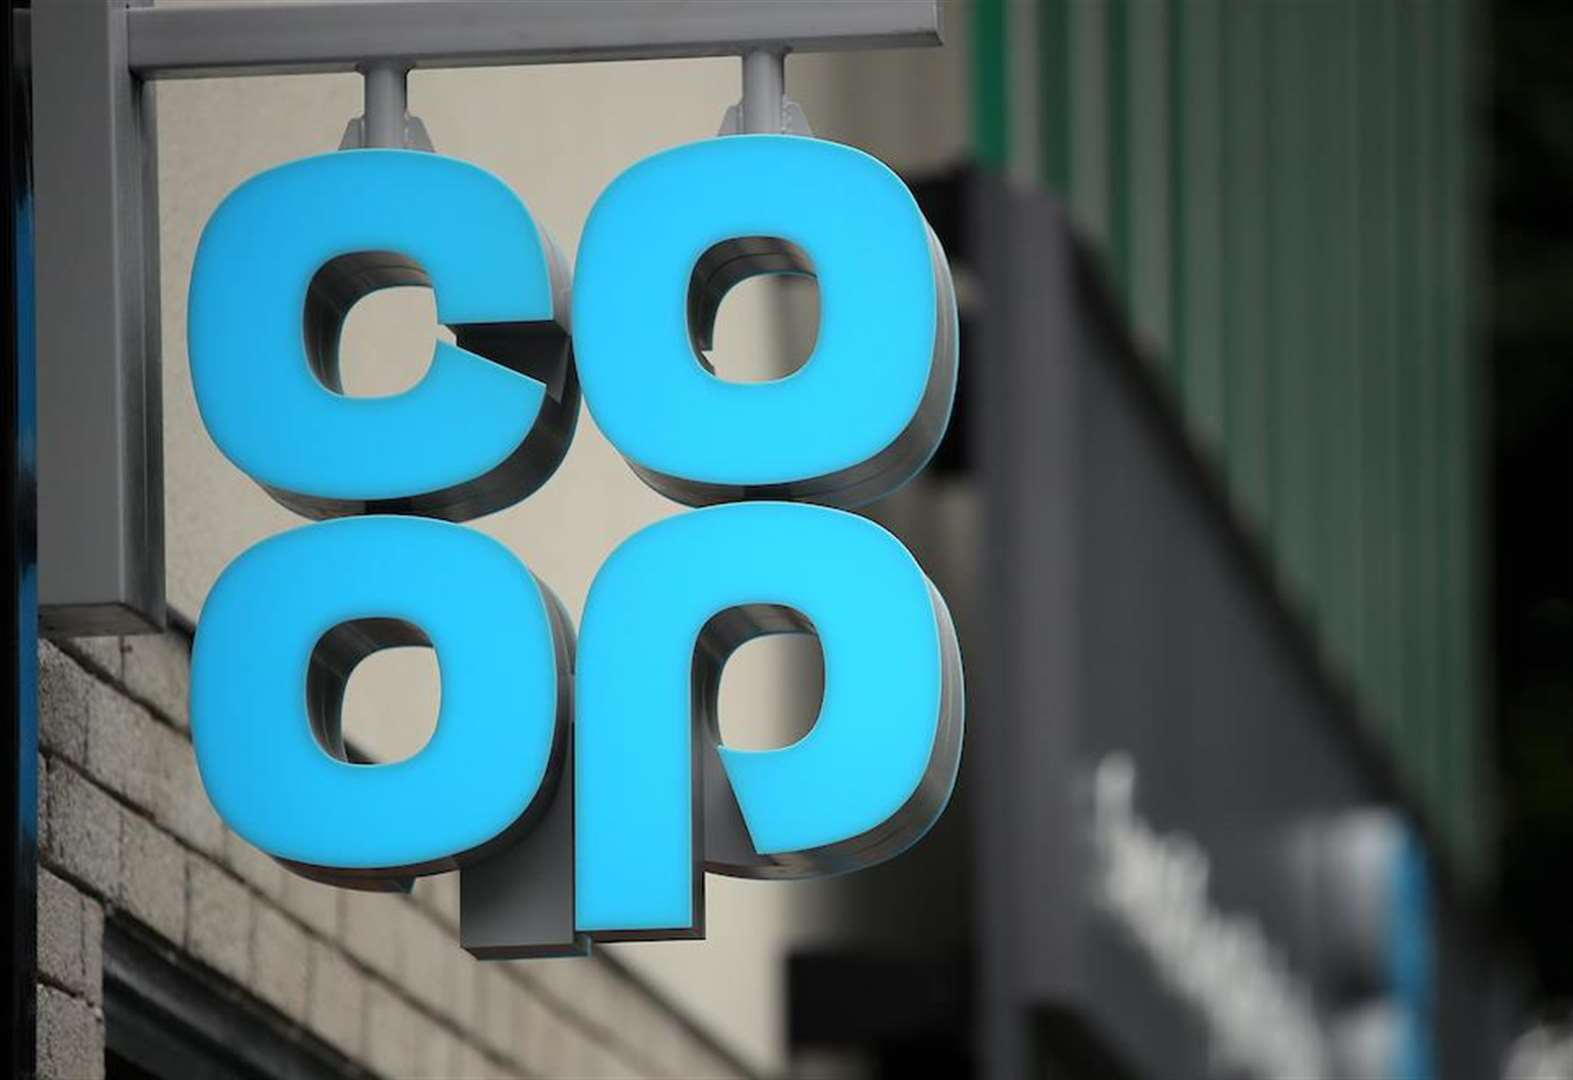 Co-op to end 23-year wait for local shop